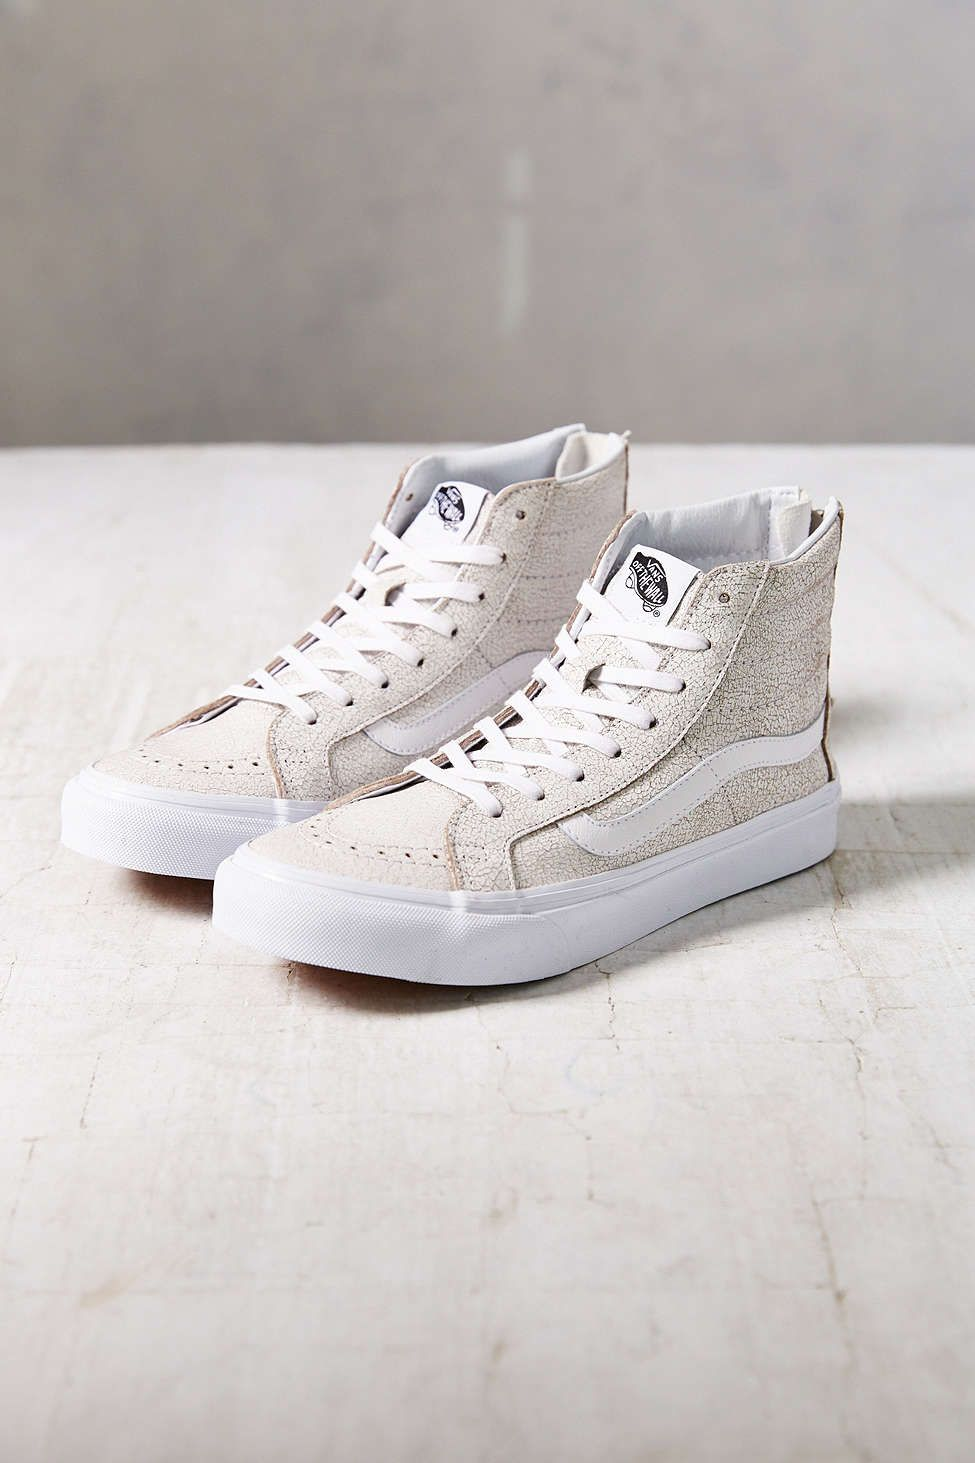 8f10e81d3b Vans Sk8-Hi Crackle Suede Womens Sneaker - Urban Outfitters